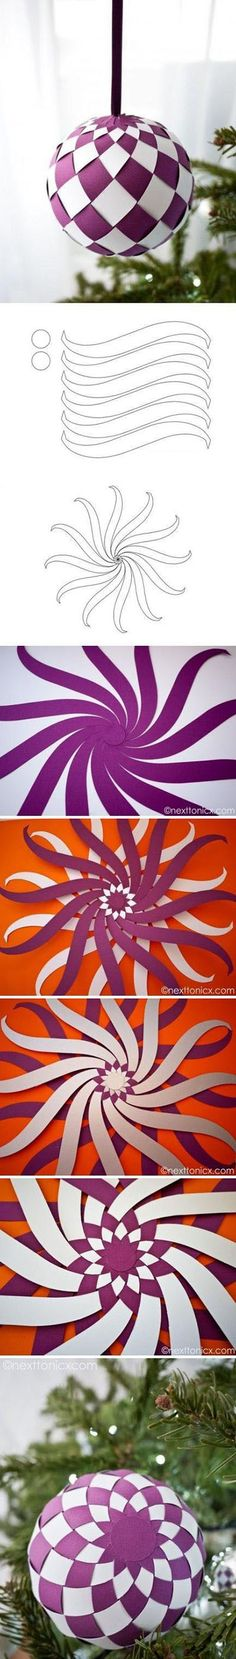 Diy Purple Decoration Ball - Follow #SightApp and save an entire article or recipe by 1 screenshot (Check How: itunes.apple.com/...